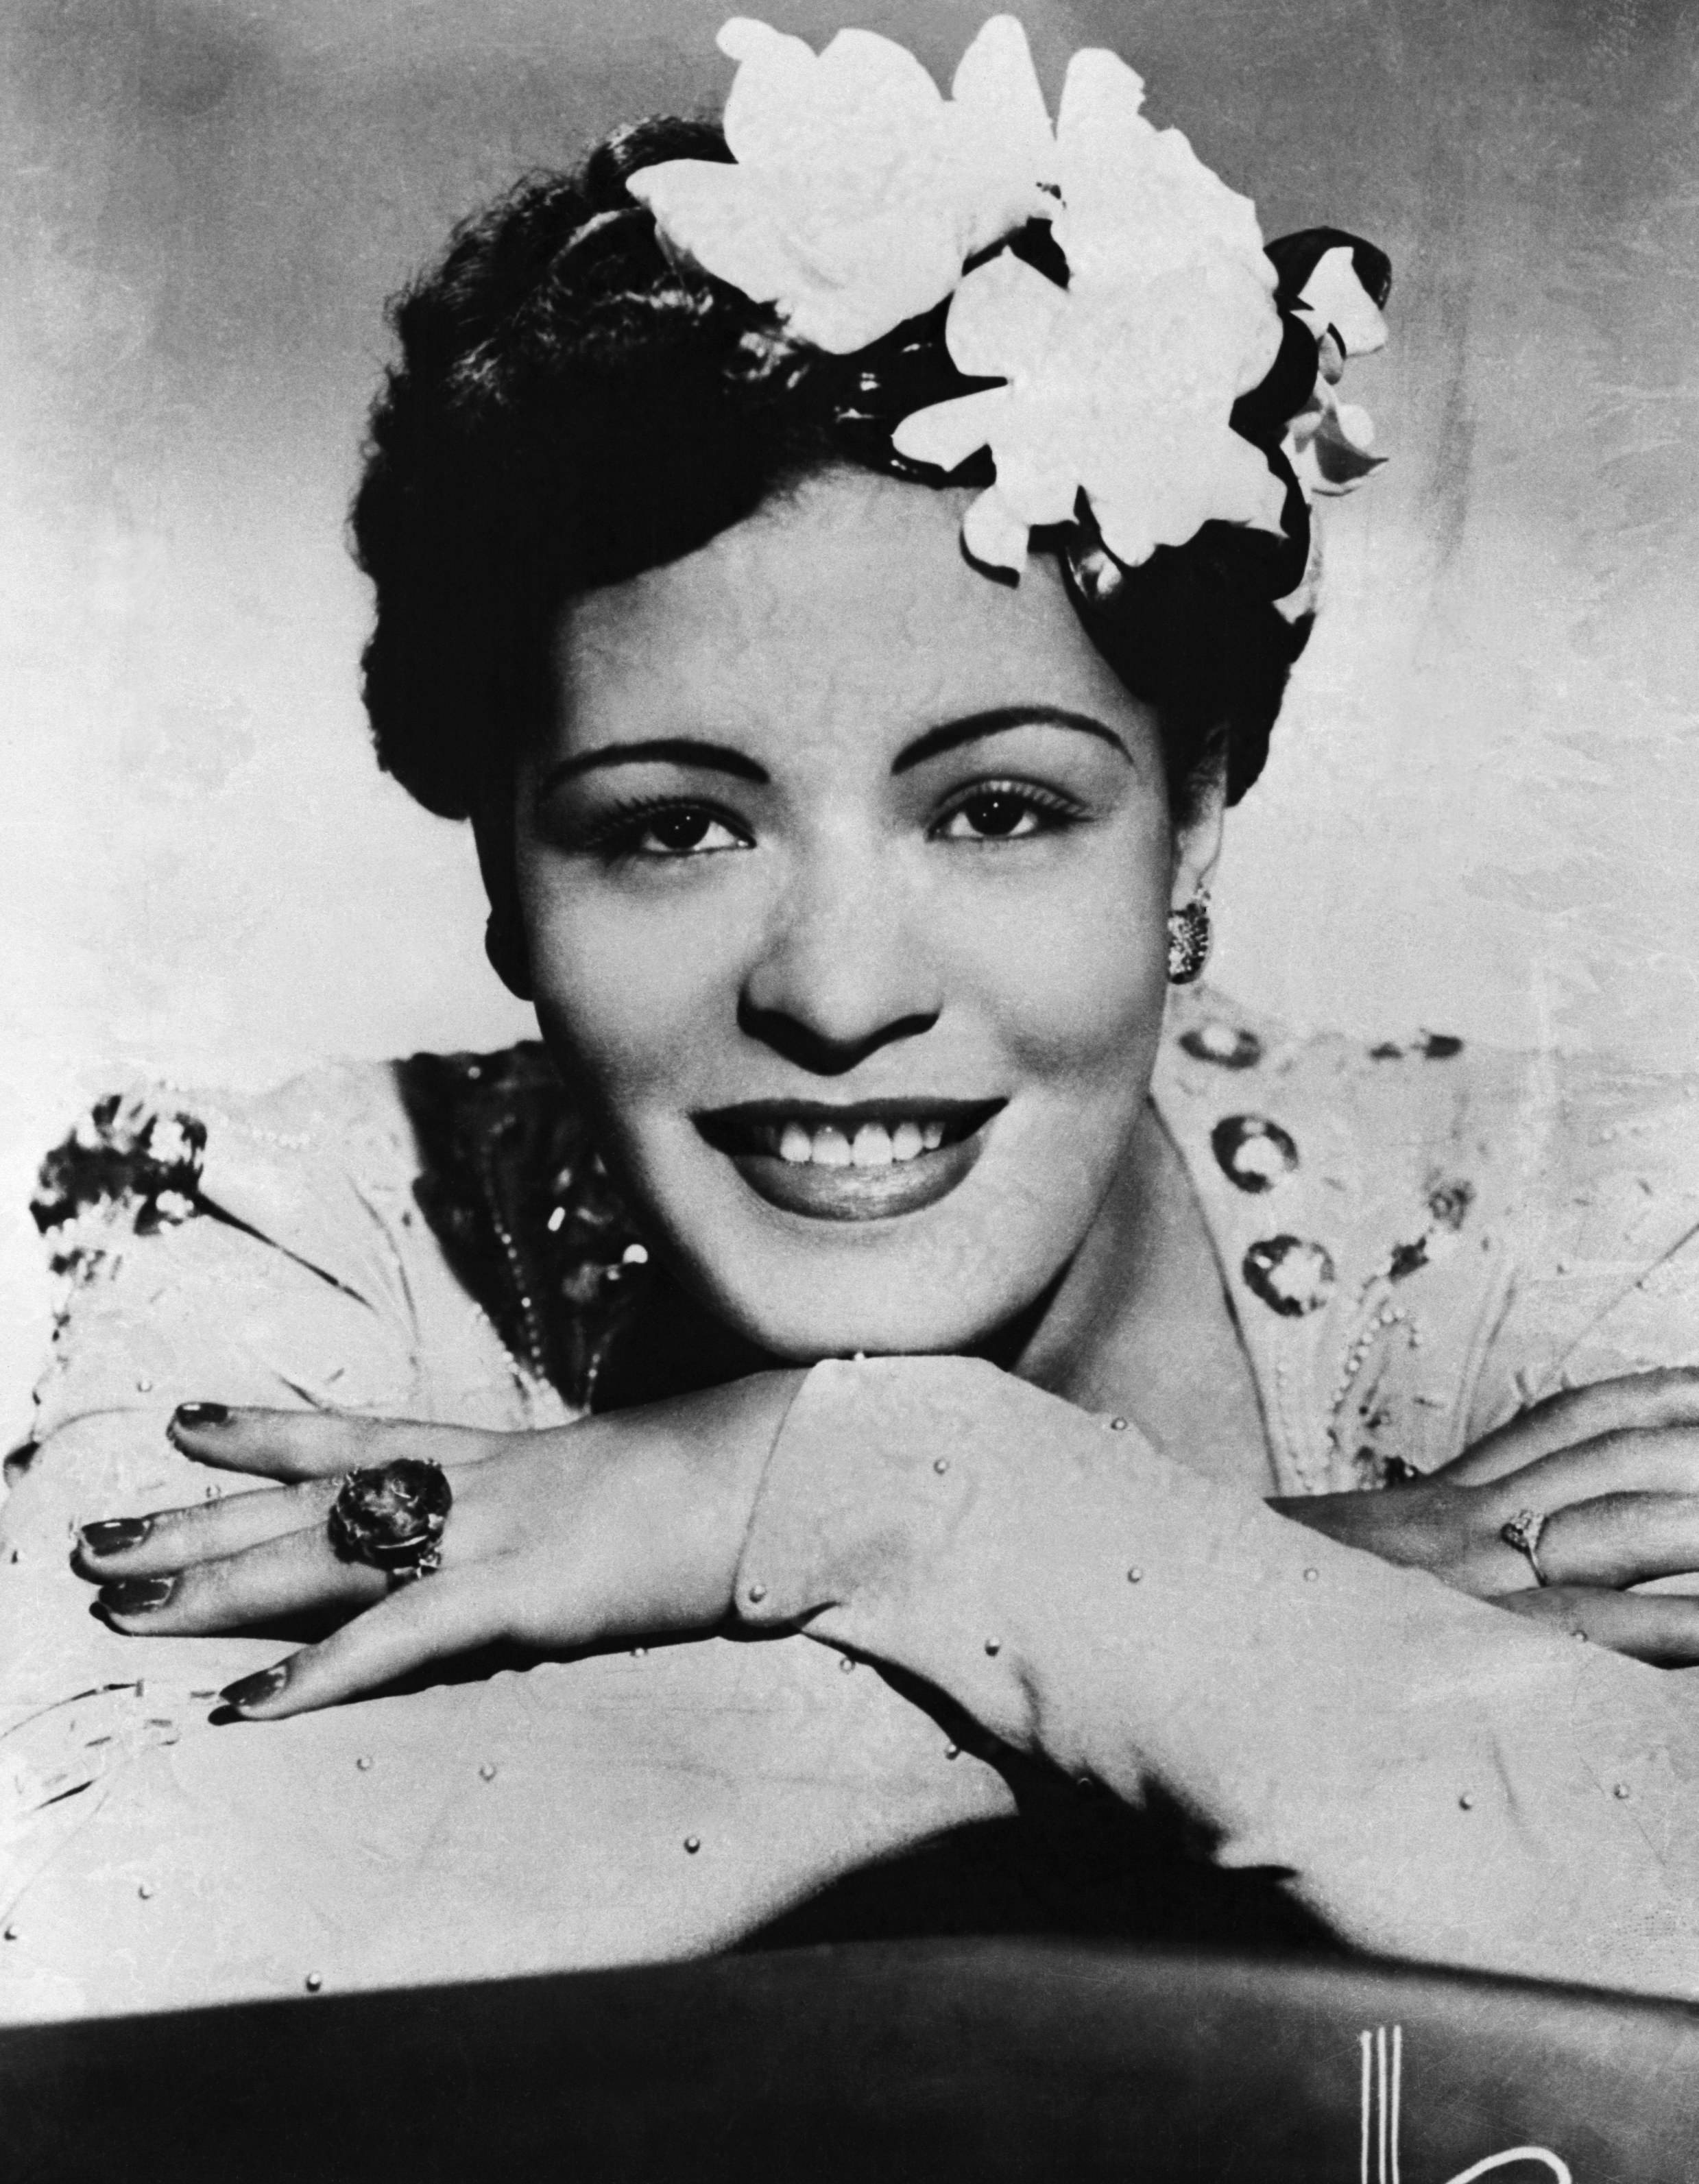 Billie Holiday with flowers in her hair and head resting on her hands